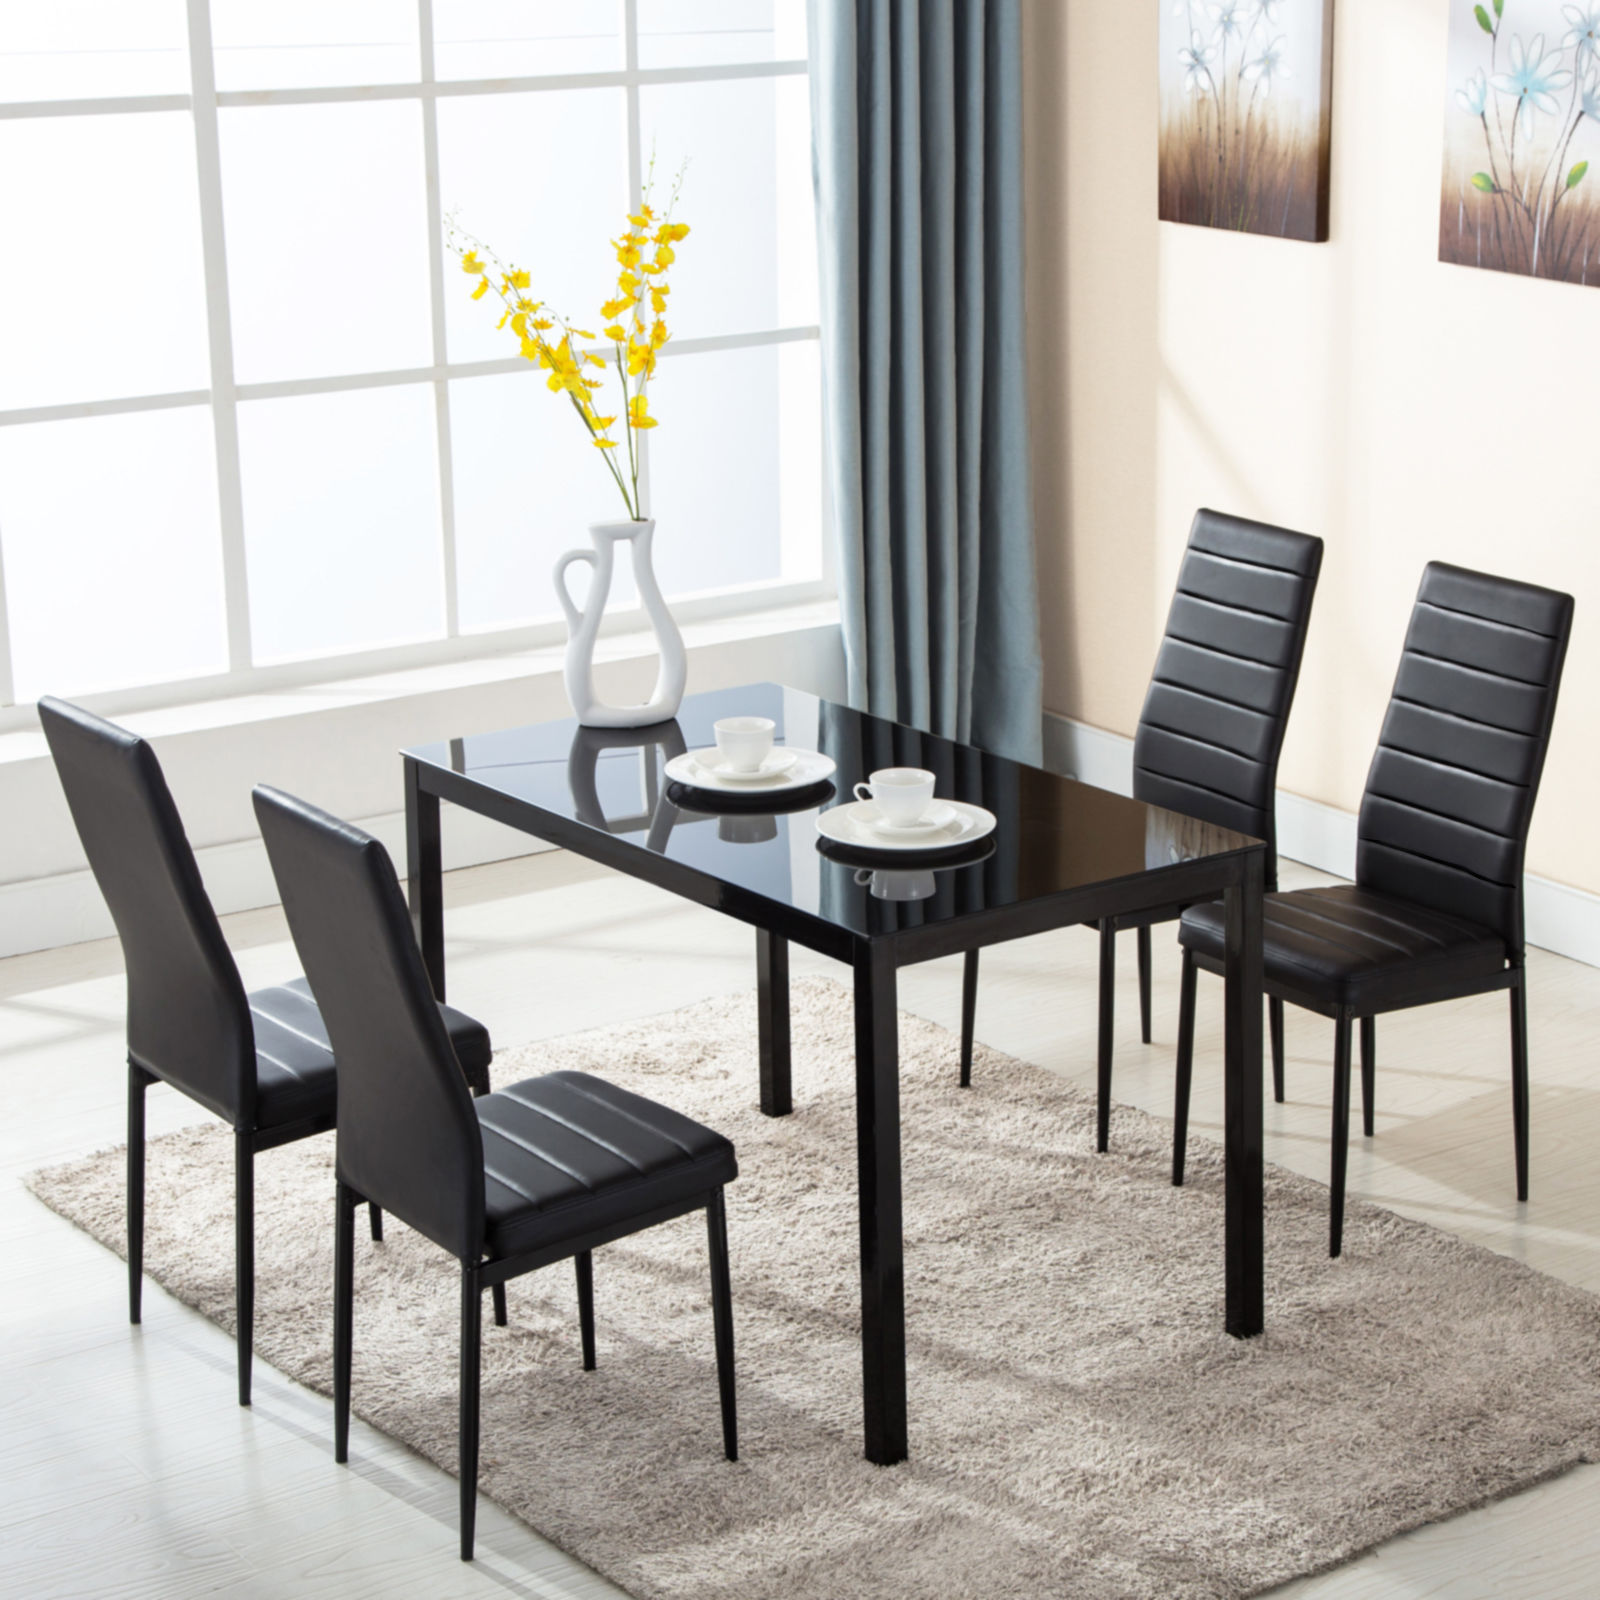 Ktaxon 5 Piece Dining Table And Chairs Set,4 Chairs,Glass Table Breakfast  Furniture